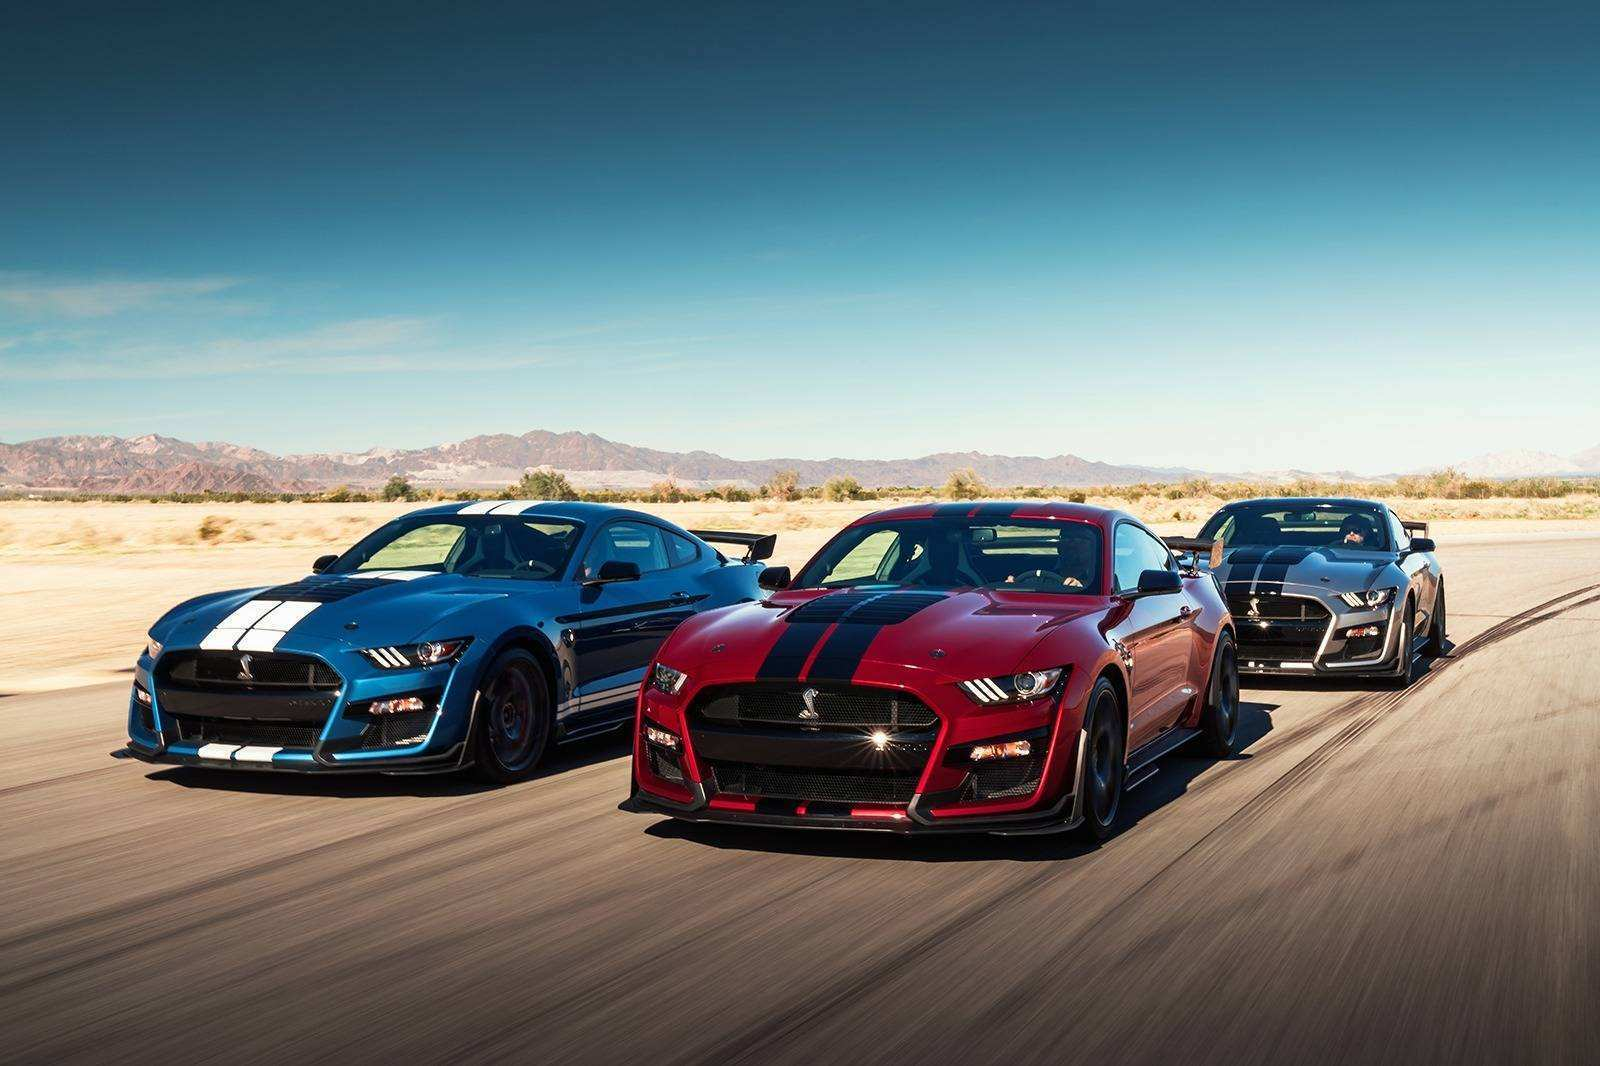 83 All New Ford Shelby Gt500 Price 2020 Price And Review